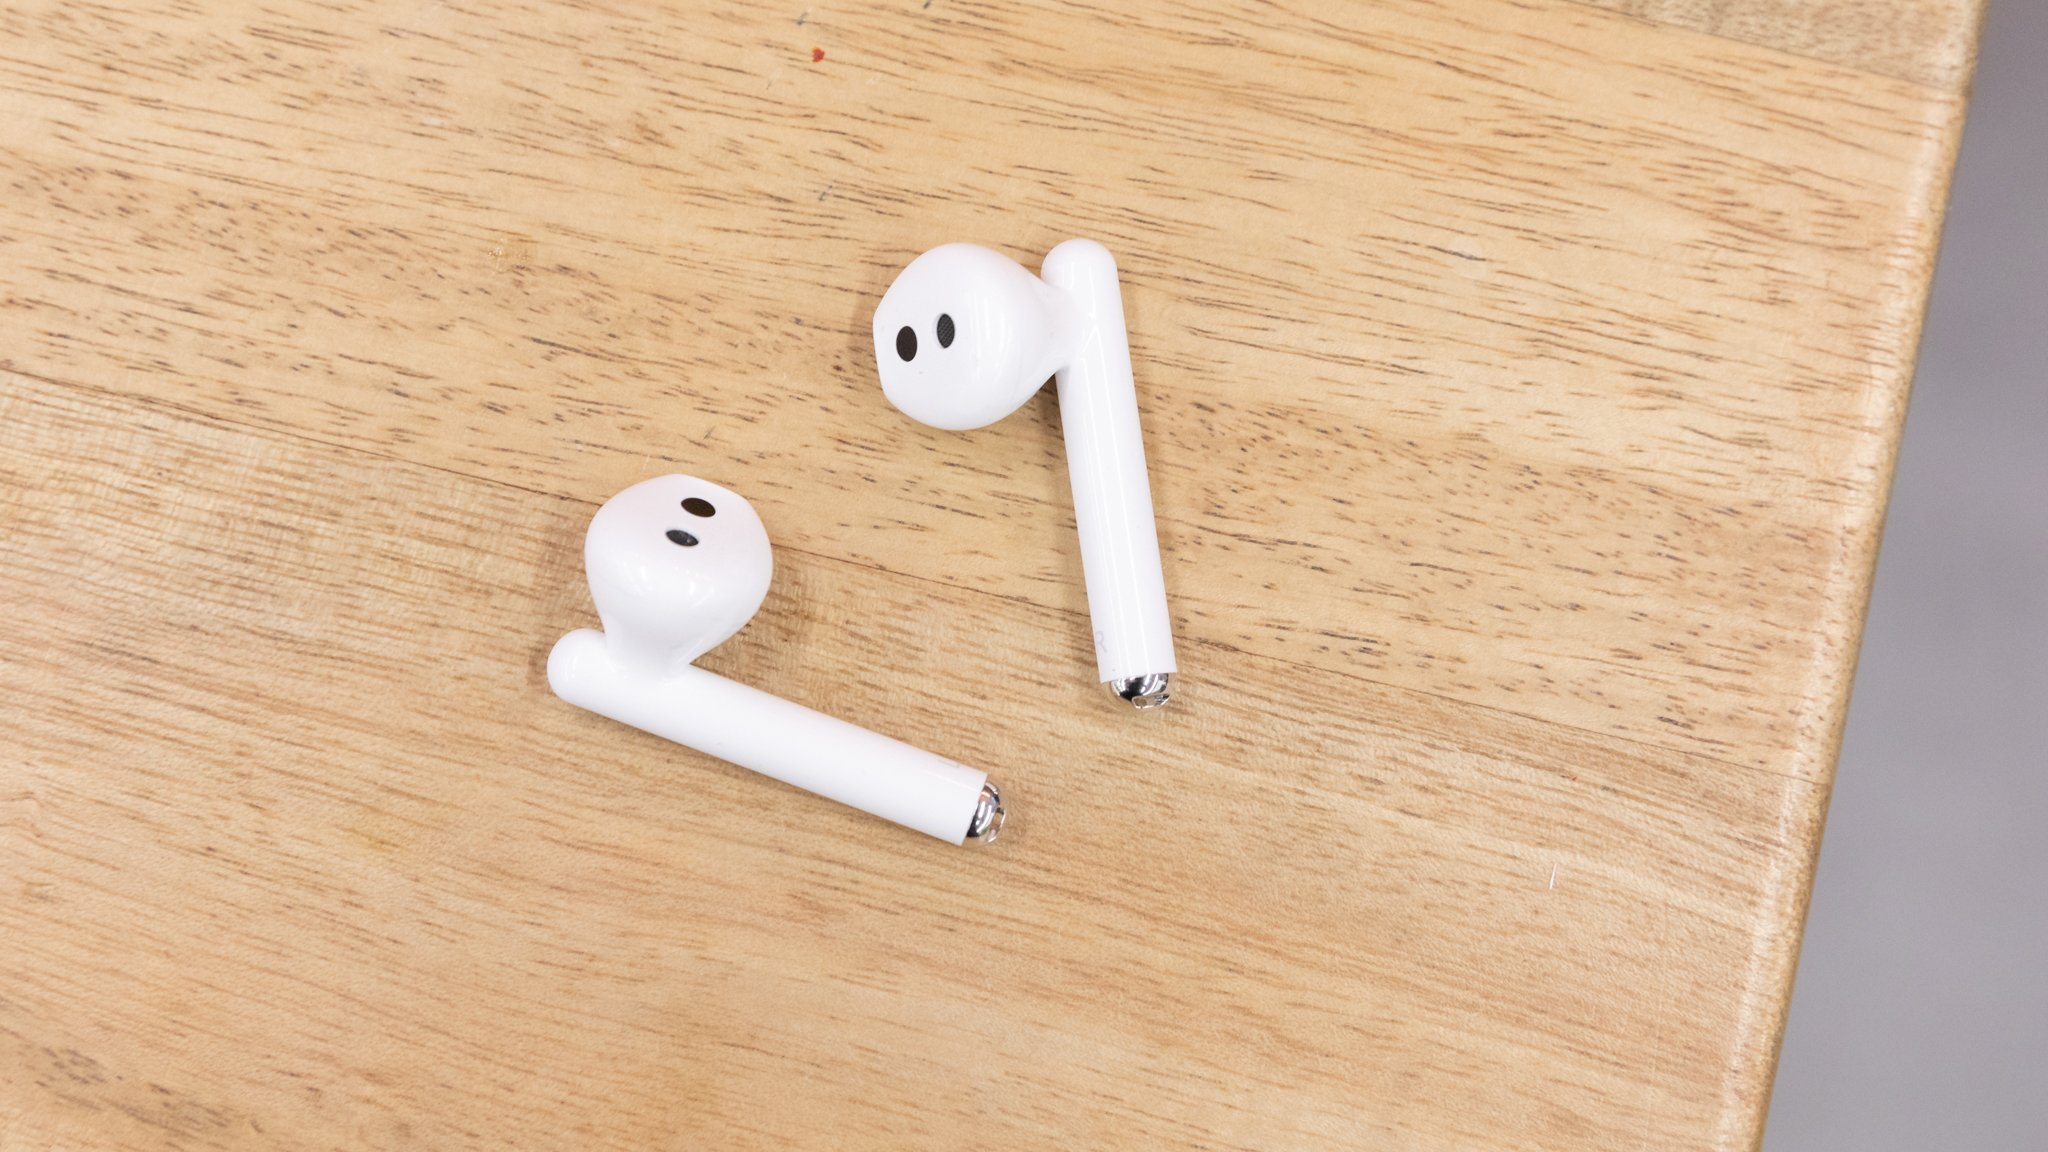 Huawei FreeBuds 3 review: AirPods Pro killers?